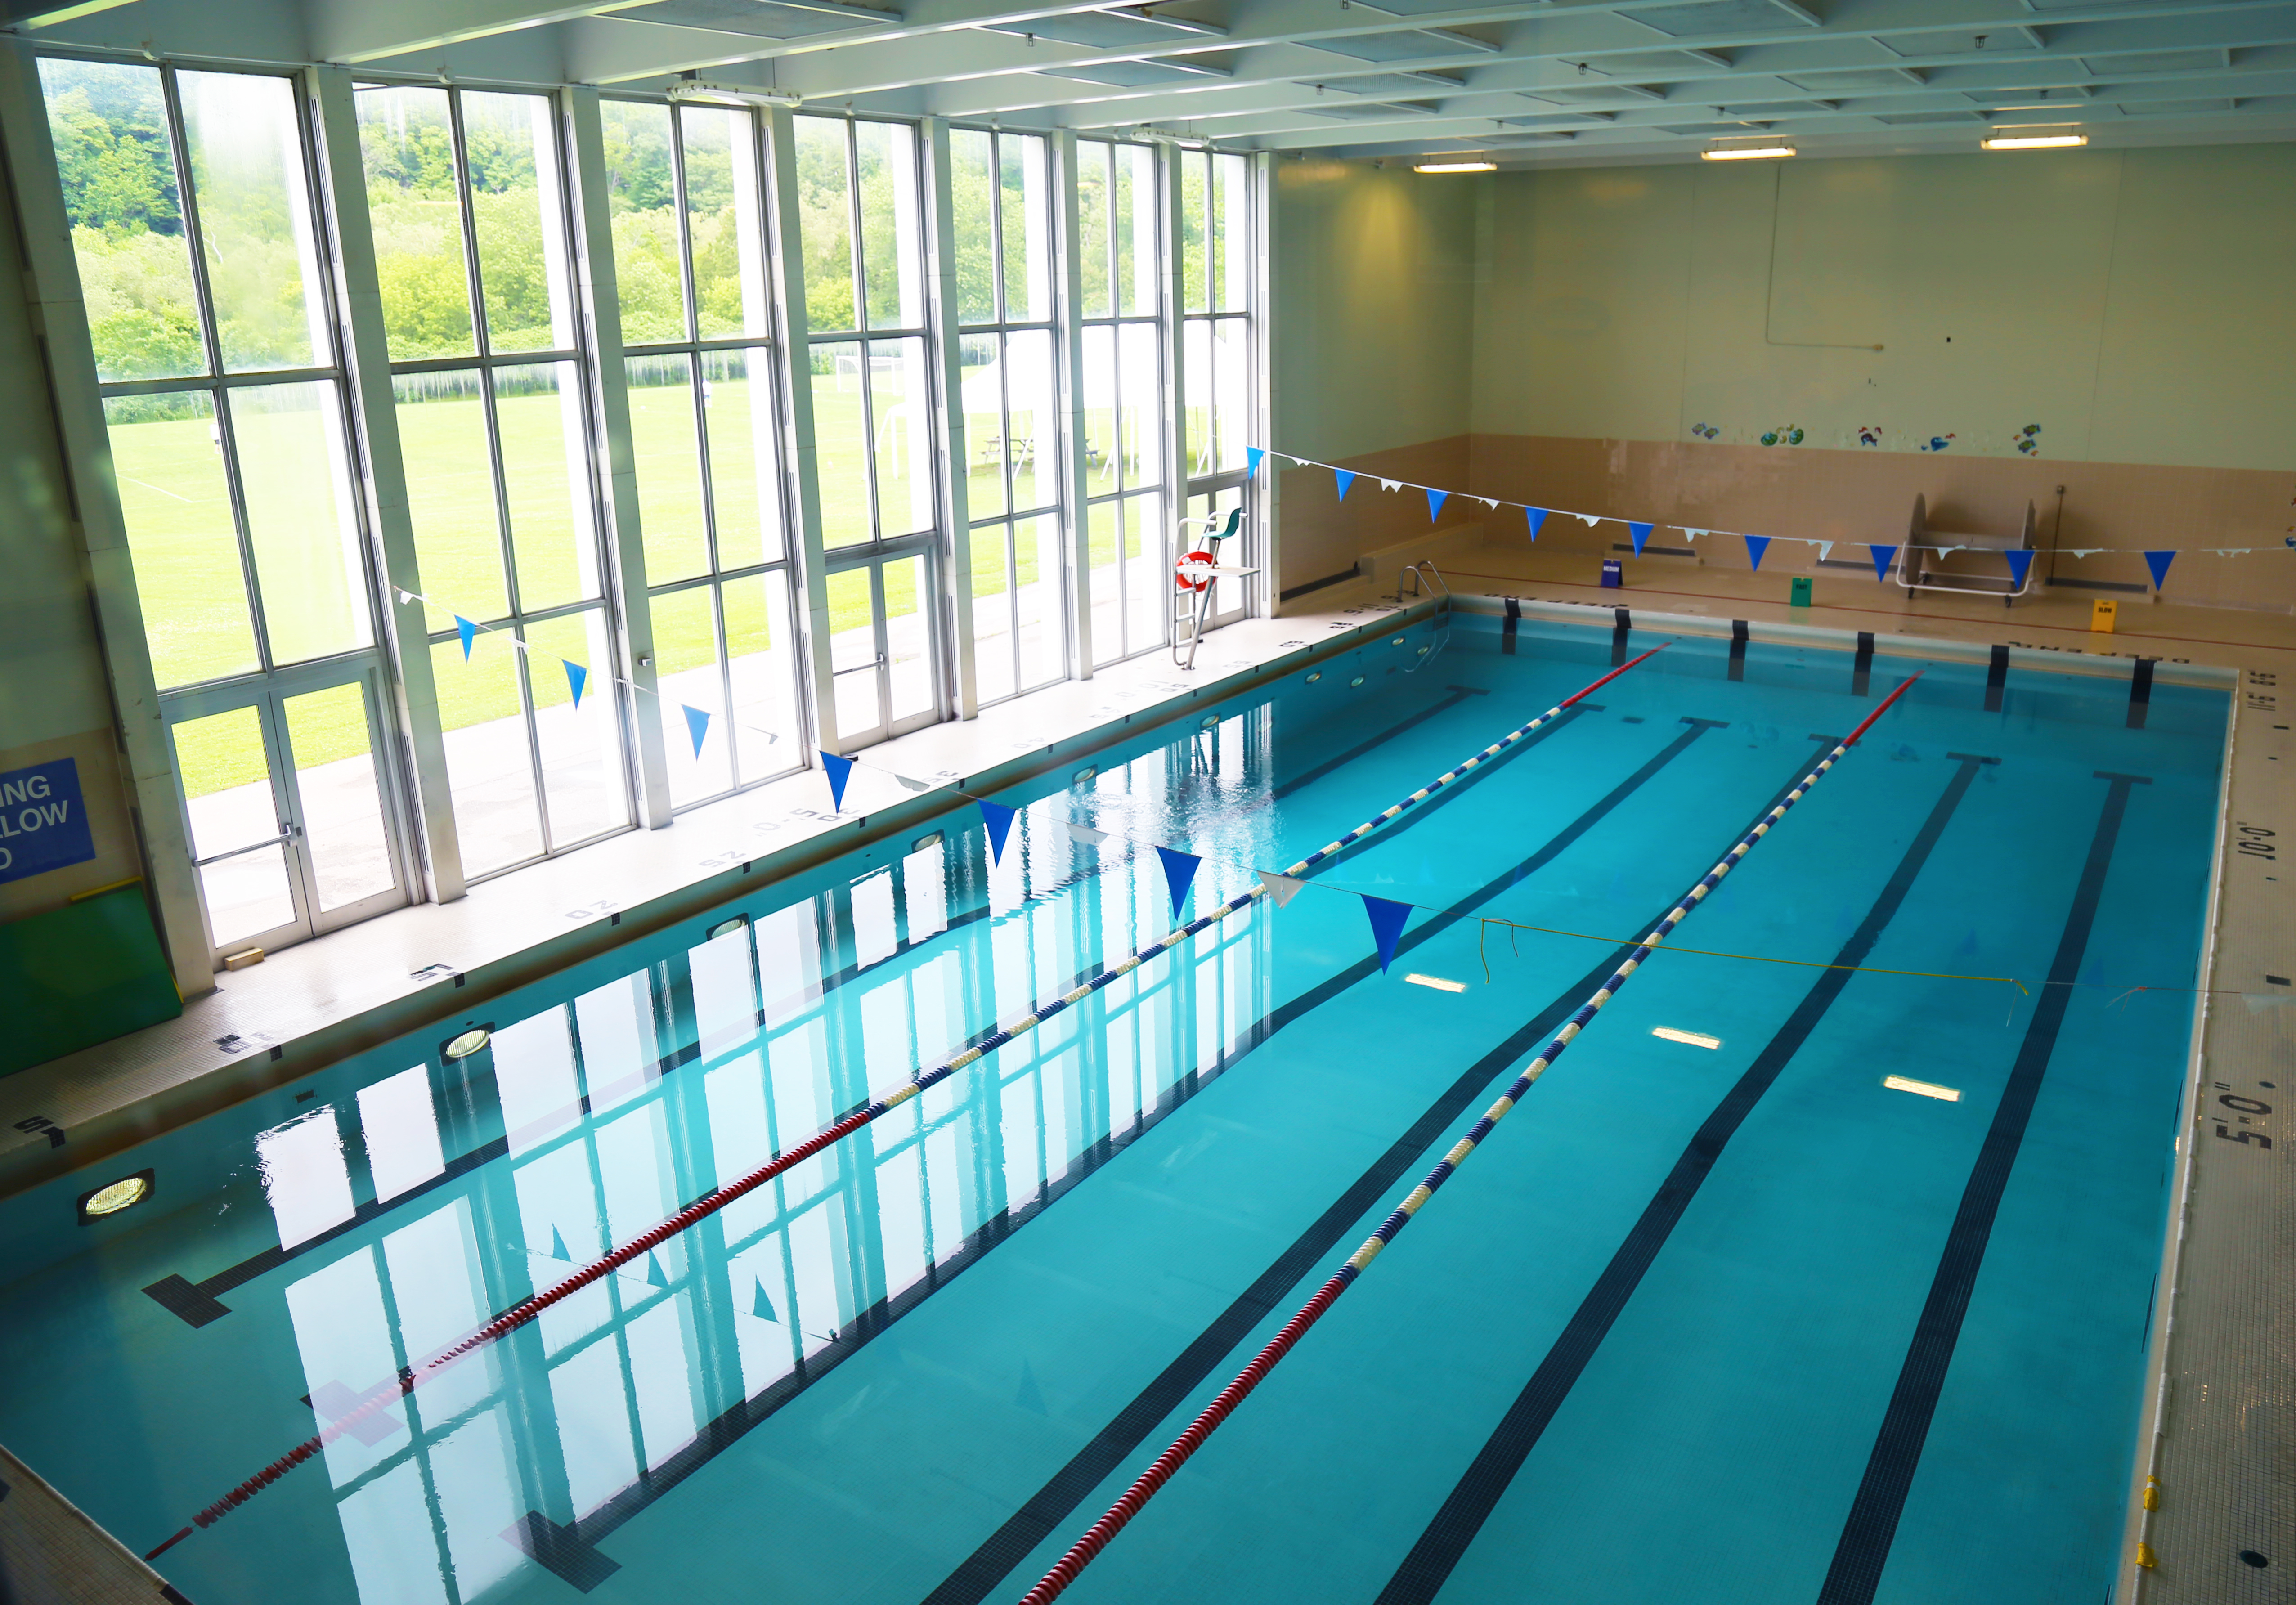 Glendon athletic club glendon for University of york swimming pool